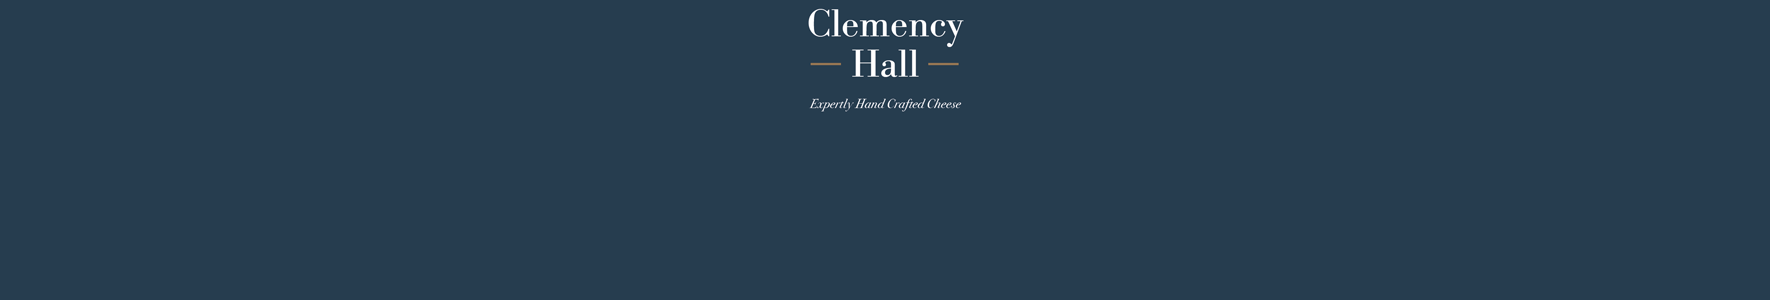 Clemency Hall